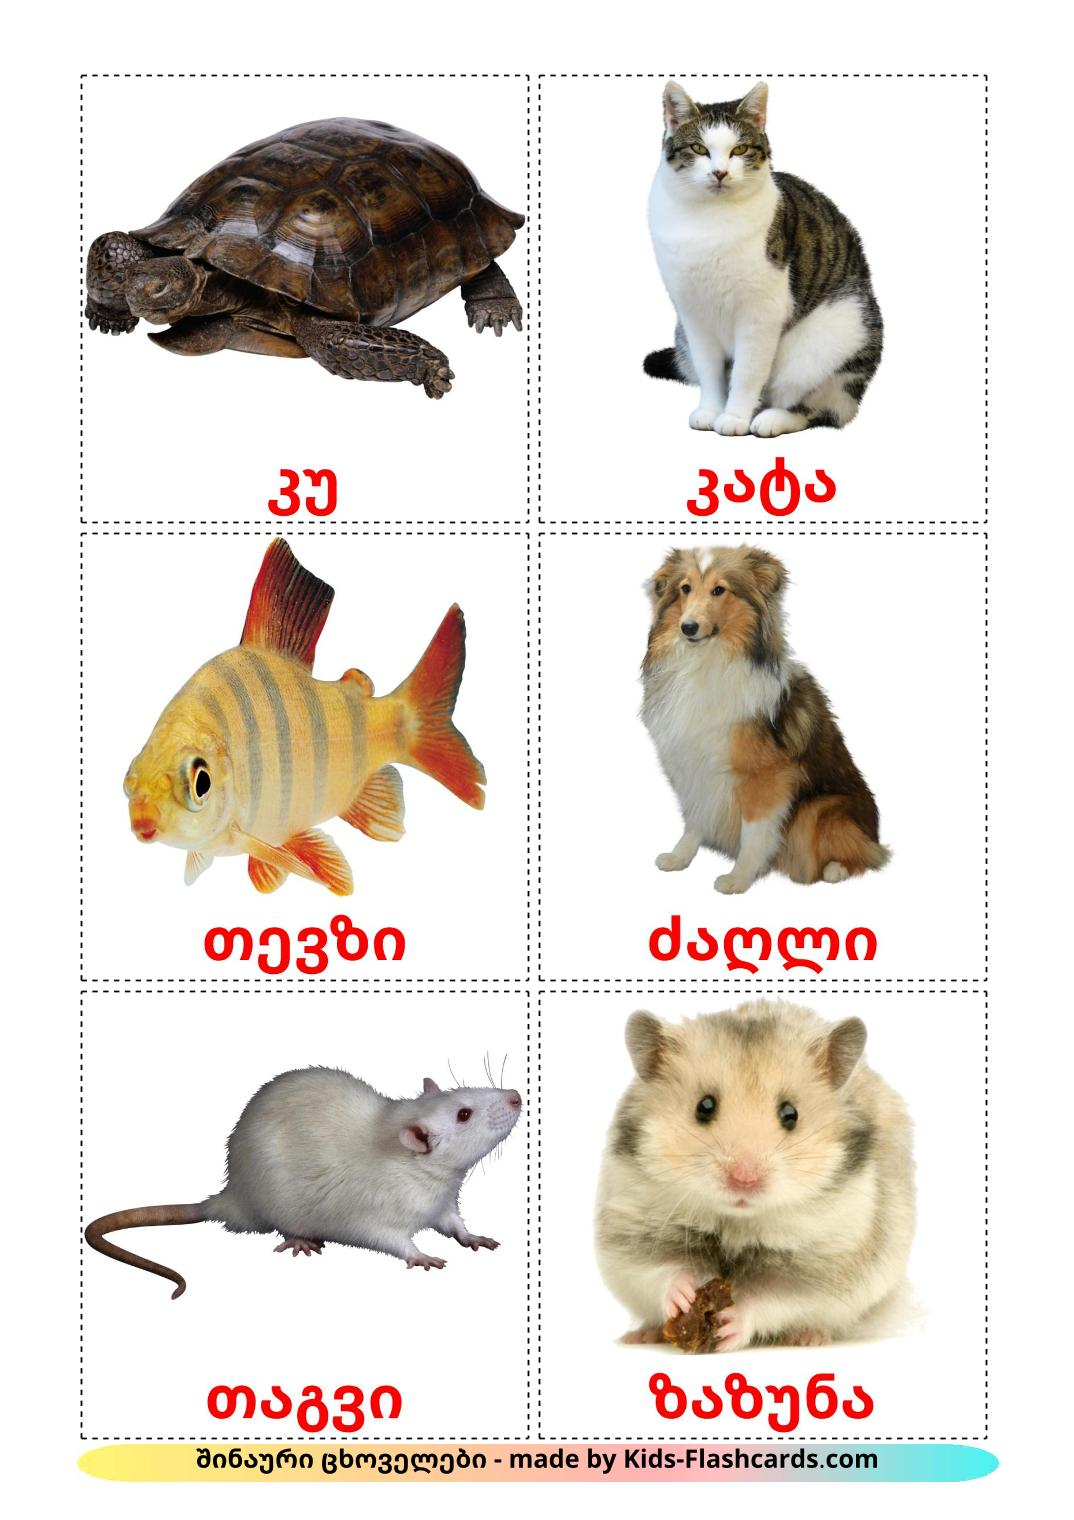 Domestic animals - 10 Free Printable georgian Flashcards